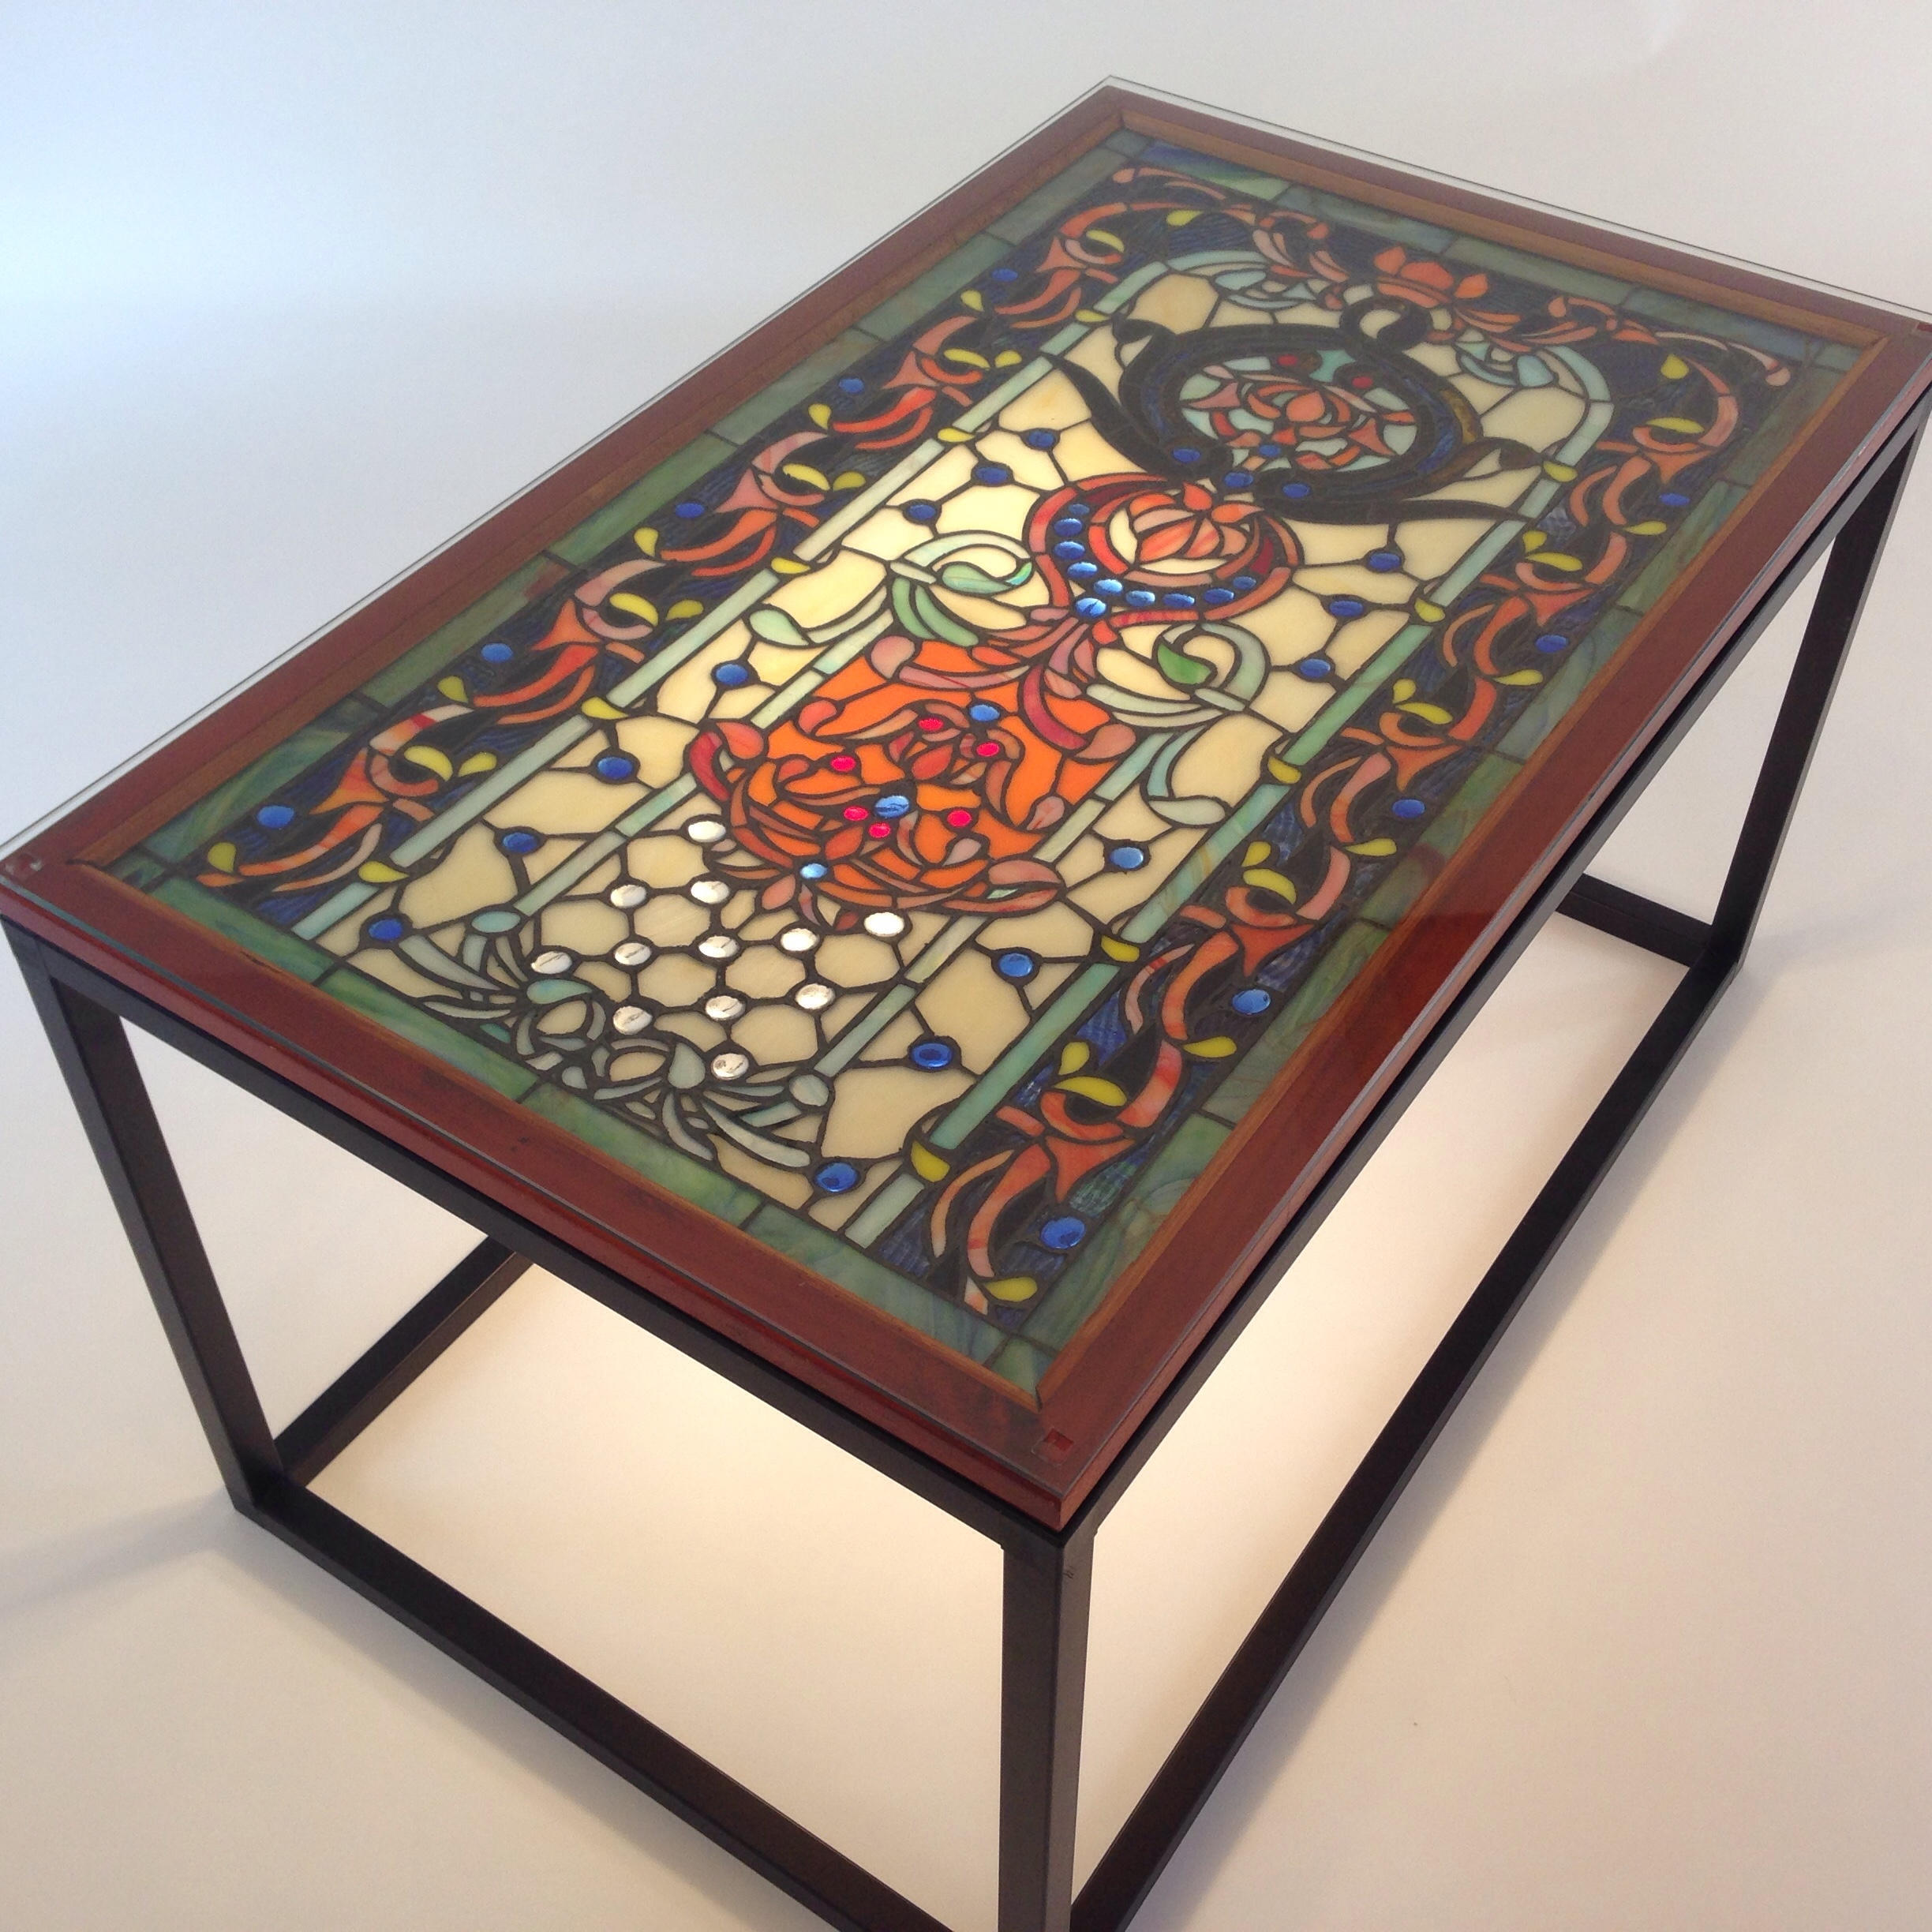 stained glass coffee table end blue and etsy fullxfull tables ethan allen american impressions dining oriental nesting rustic antique craigslist montreal furniture trunk sofa